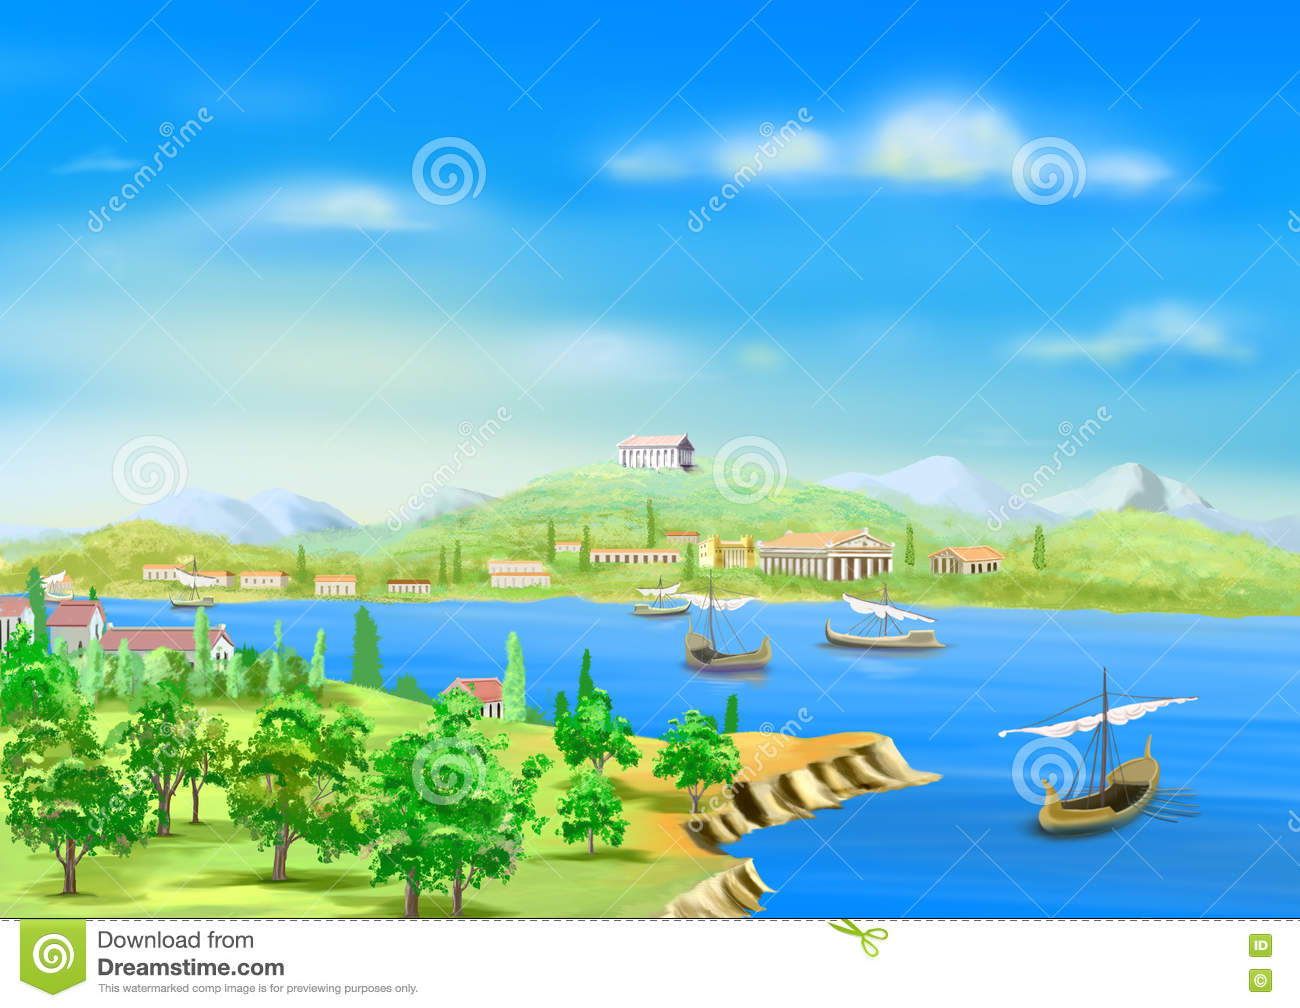 Nile River clipart ancient egypt Ancient Nile Banks The collections